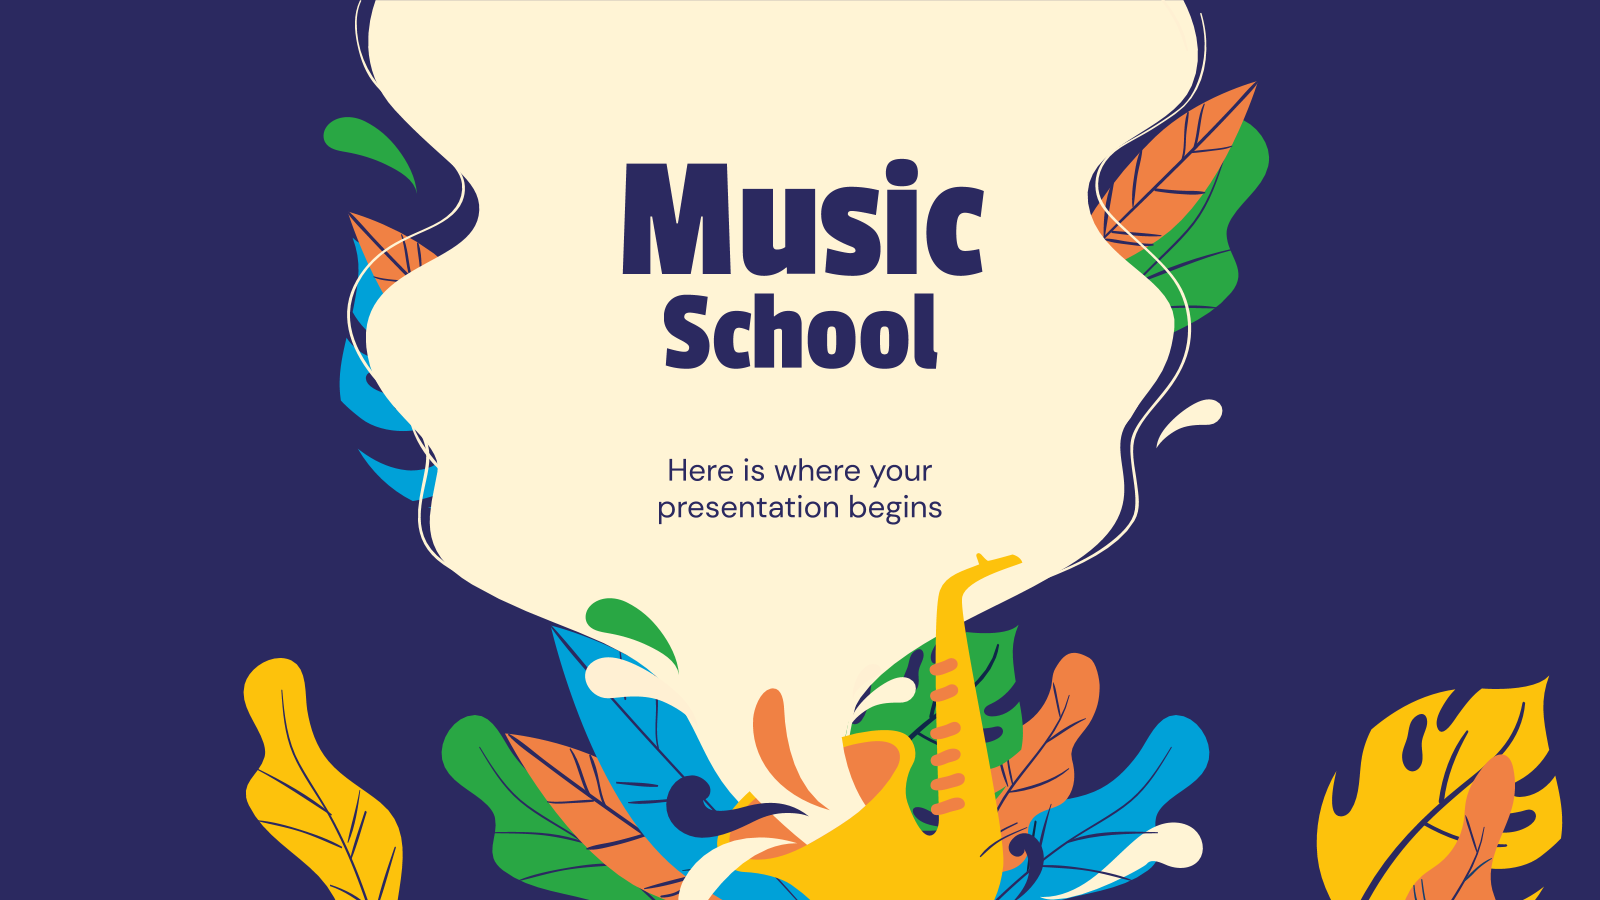 Music School Google Slides Theme And Powerpoint Template